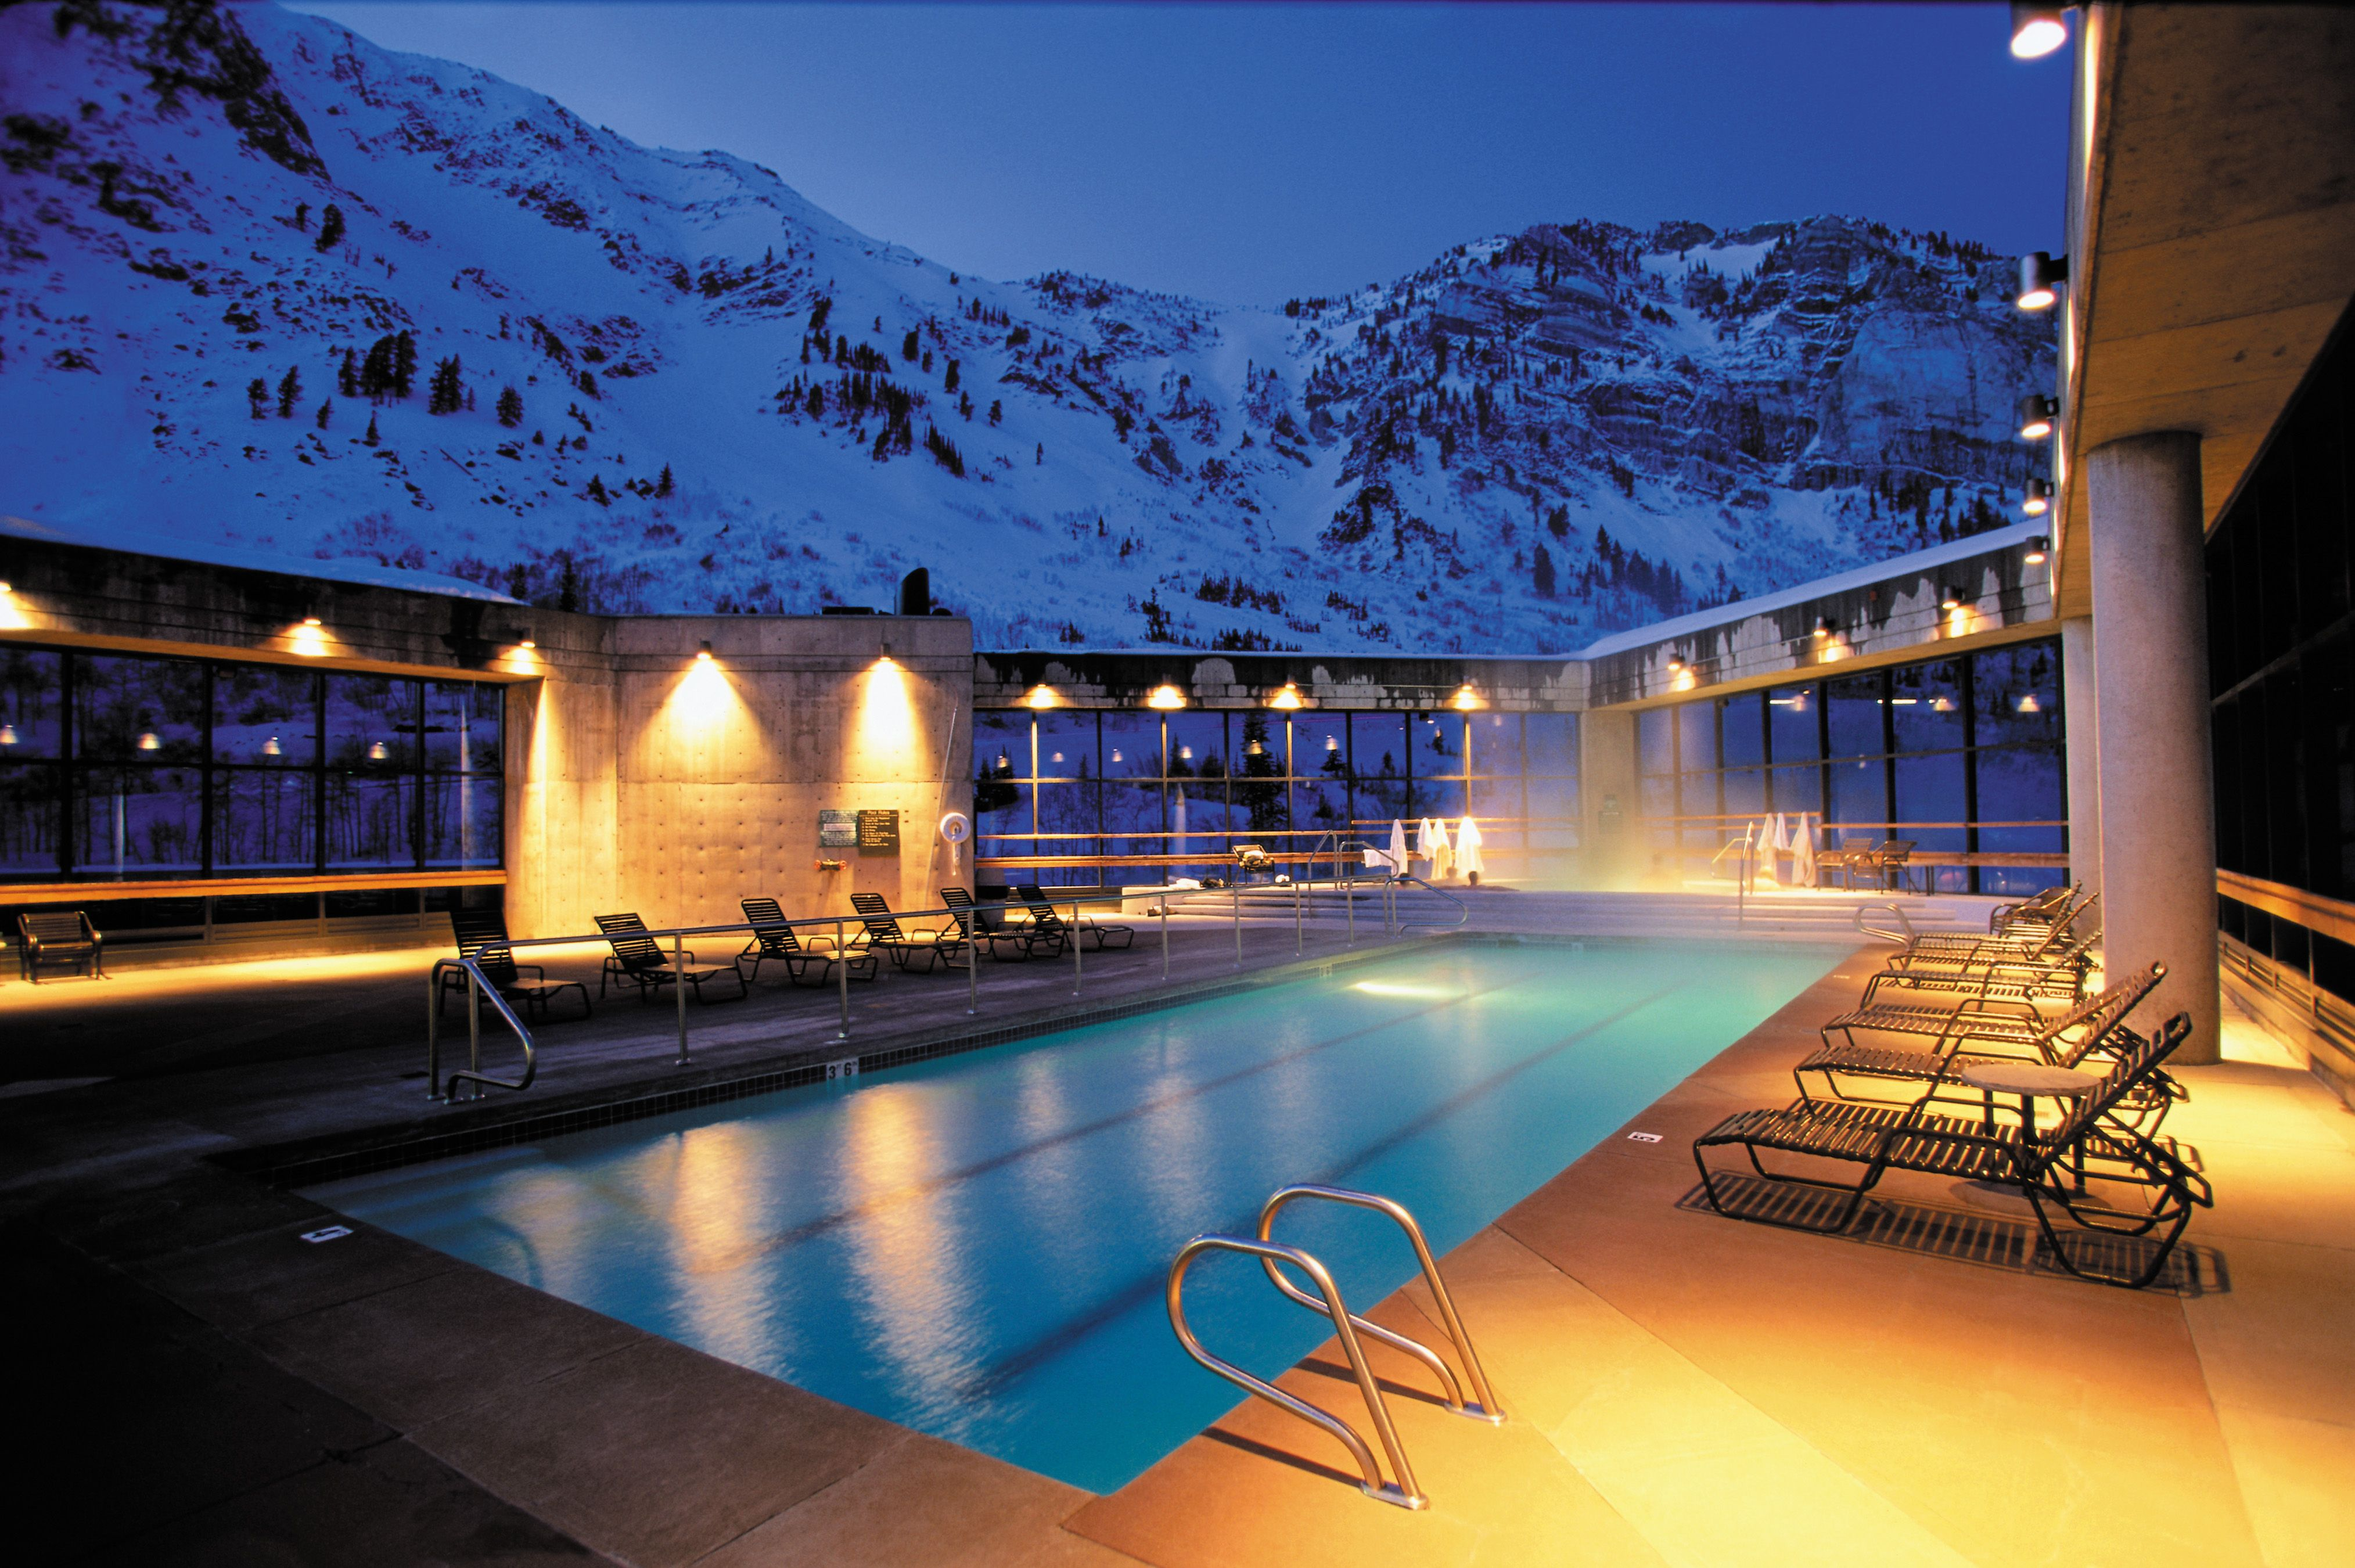 The rooftop pool at the Cliff Spa Awesome in the winter even